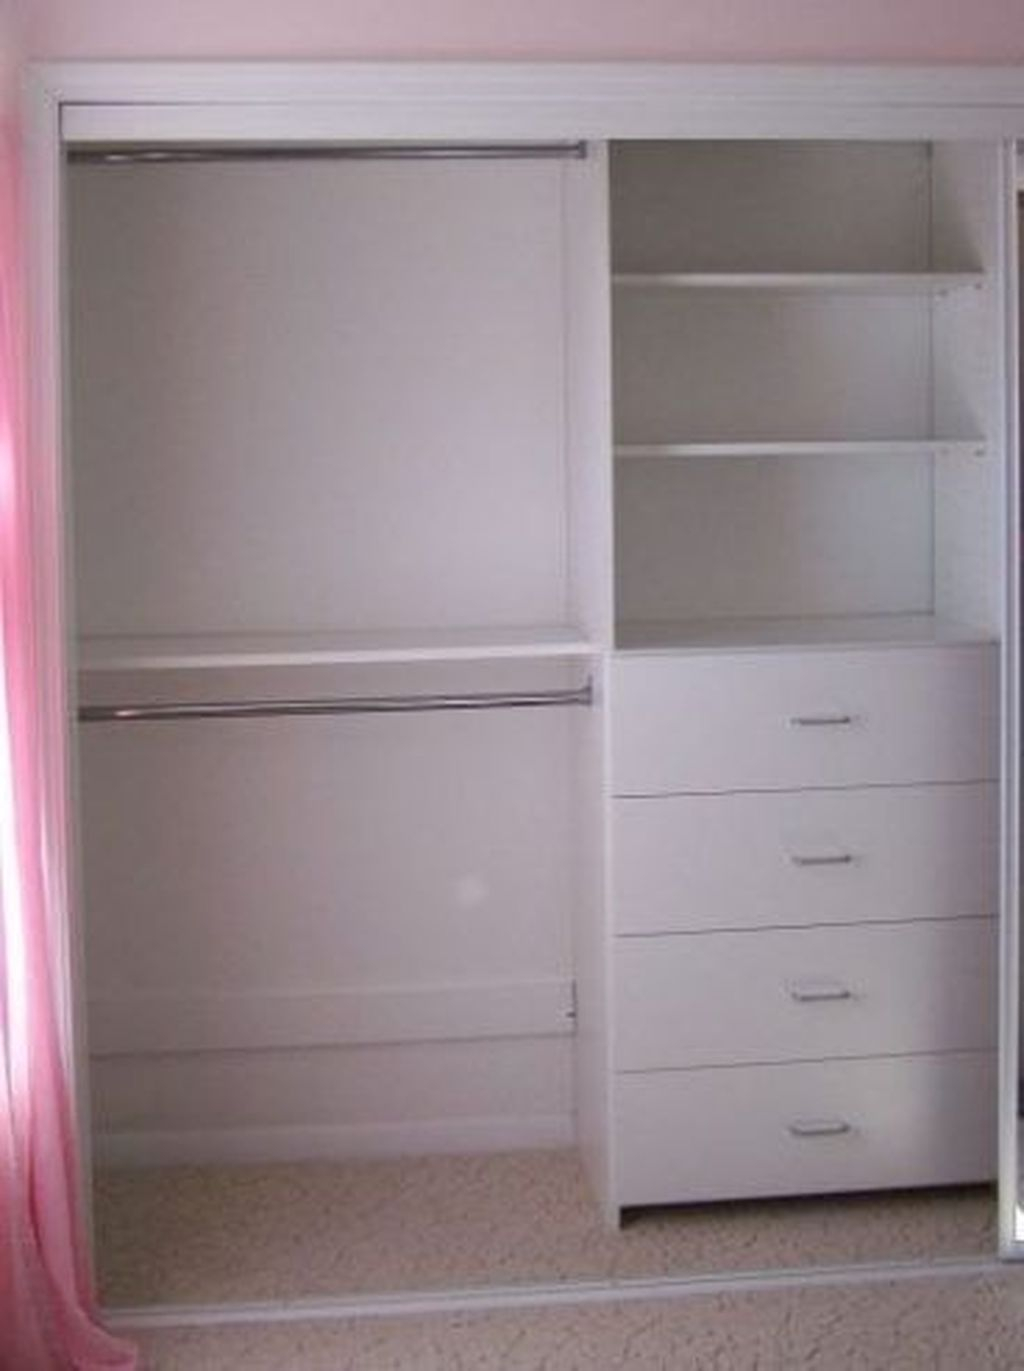 Dreamy Bedroom Organization Ideas That Will Enhance Home Storage 26